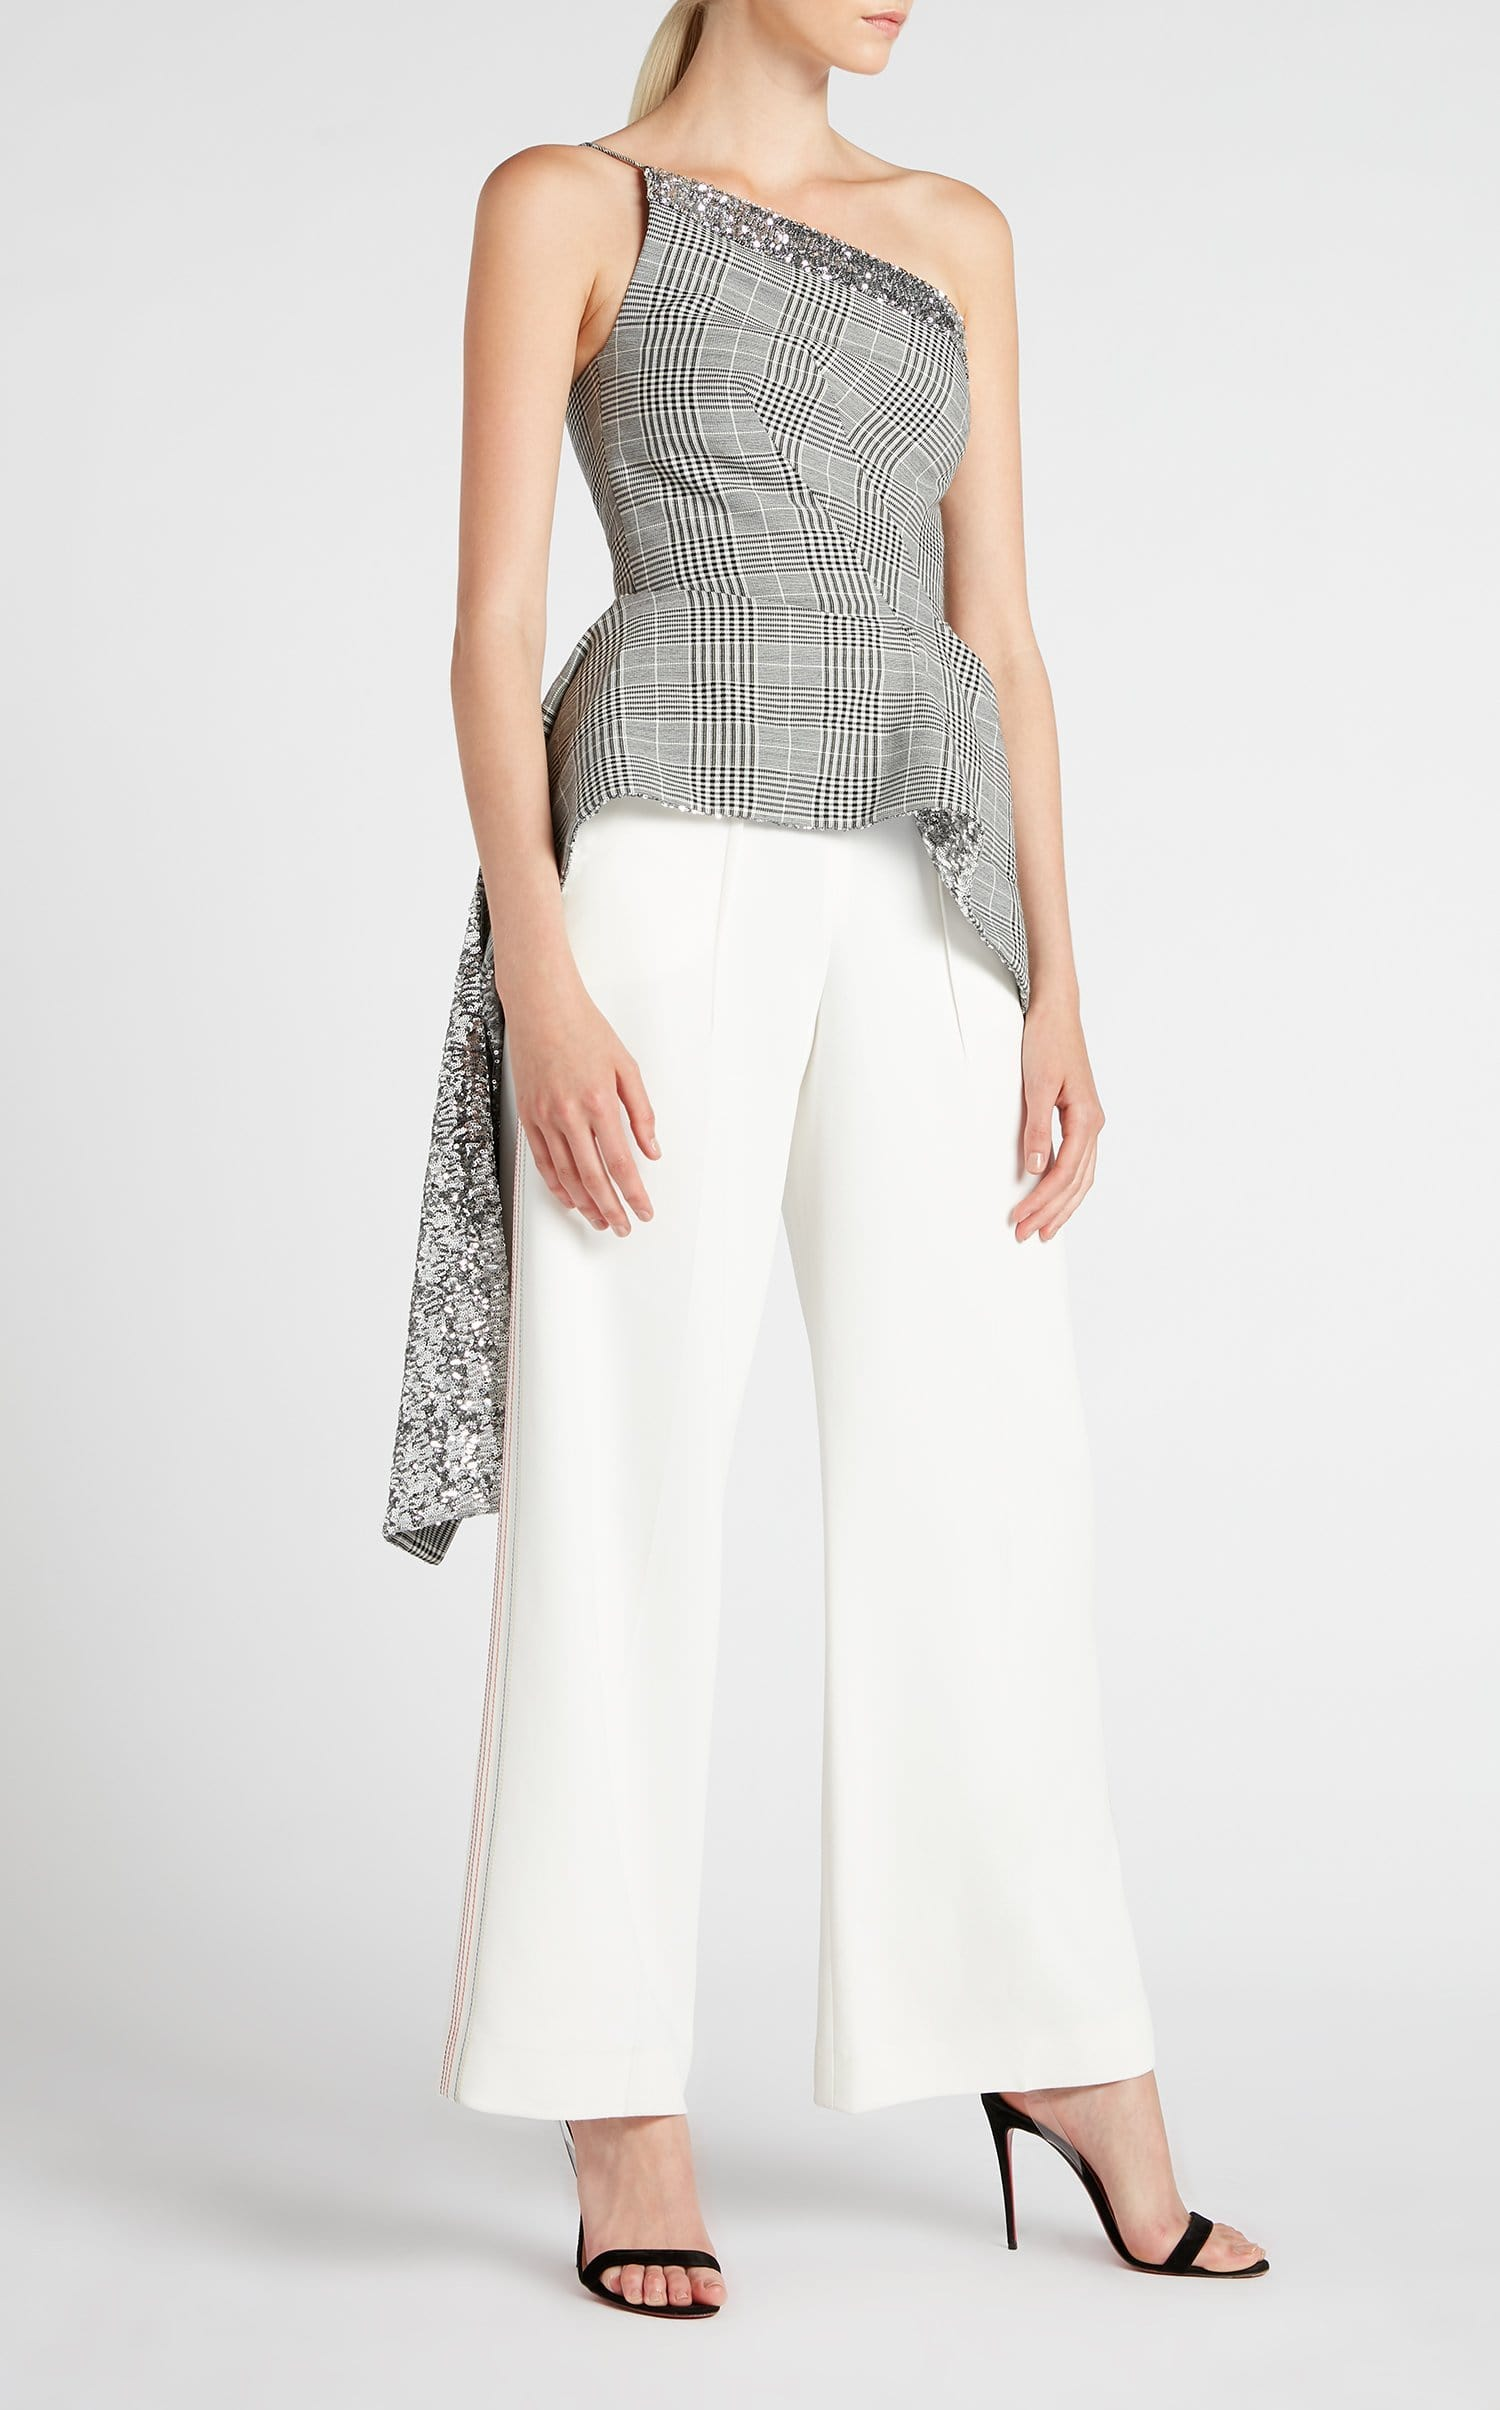 Caplan Top In Monochrome/Silver from Roland Mouret